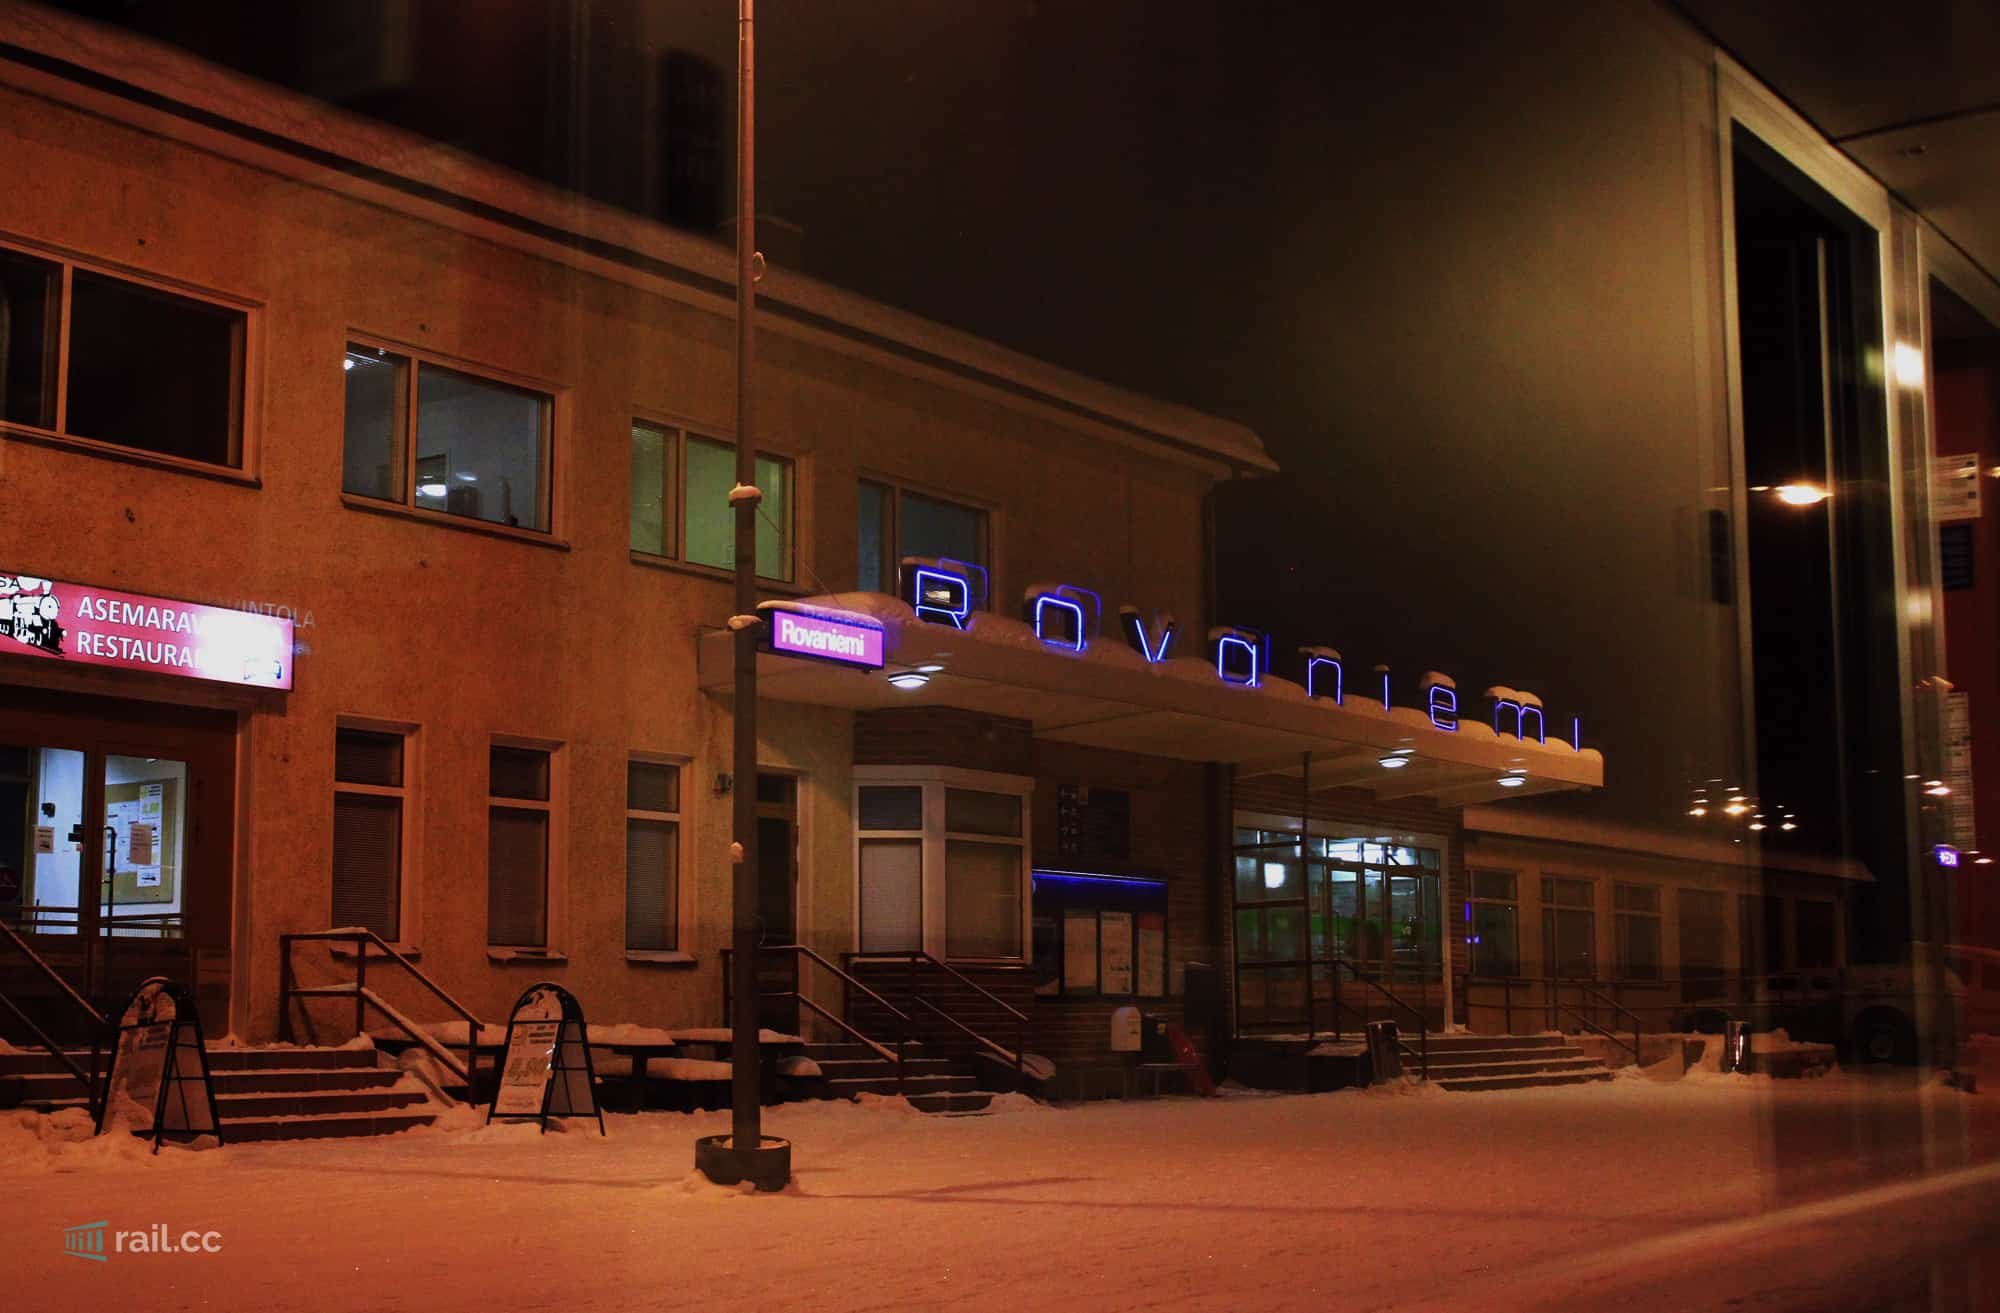 Departure of the VR night train in Rovaniemi on its way from Santa Claus to the ferry in Turku